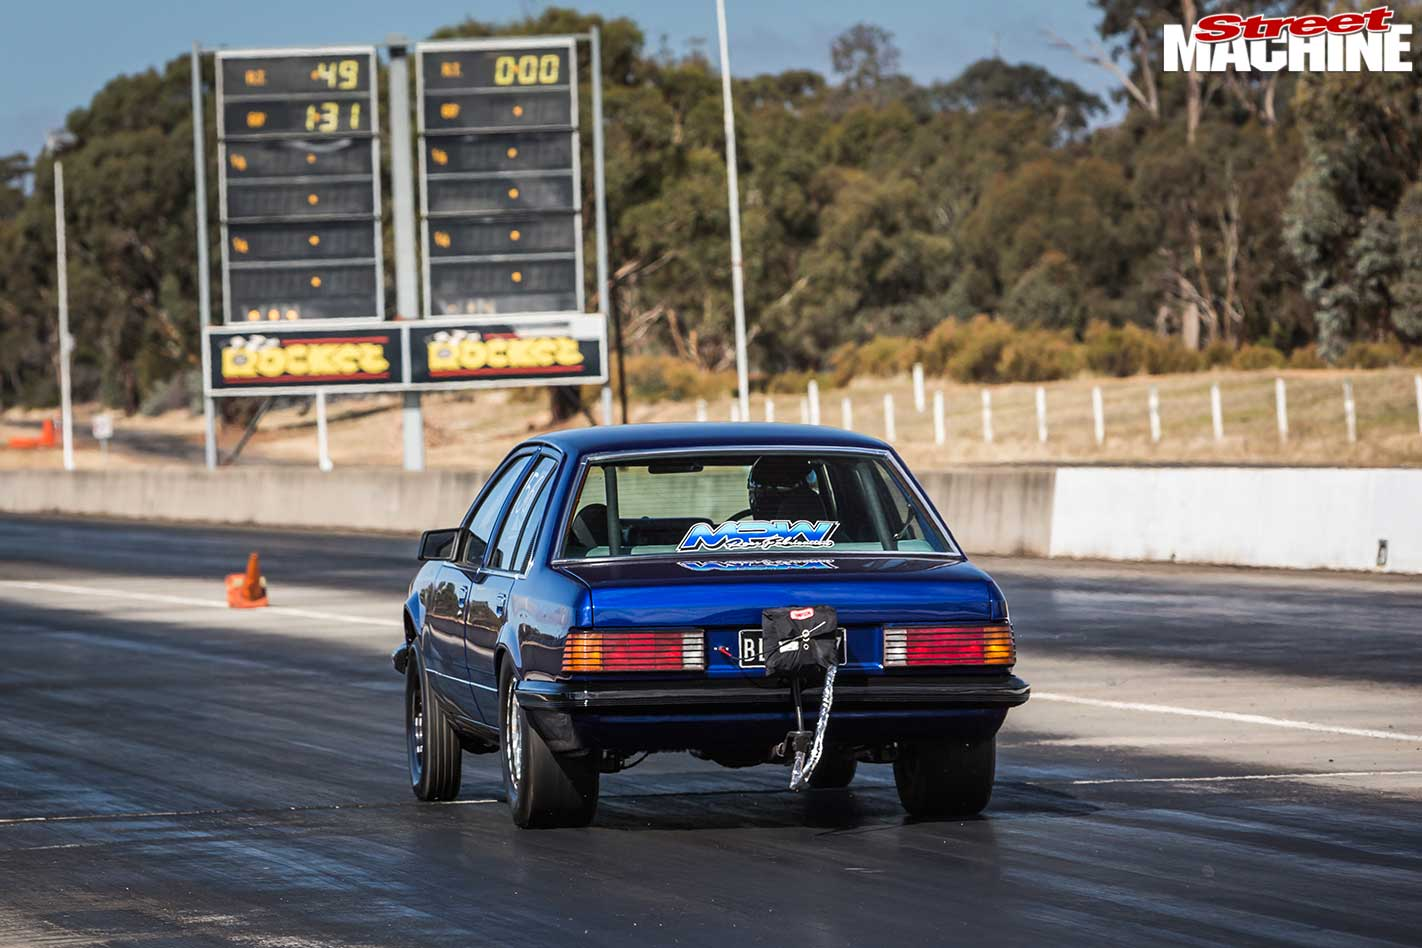 Holden Commodore at Holden Nationals